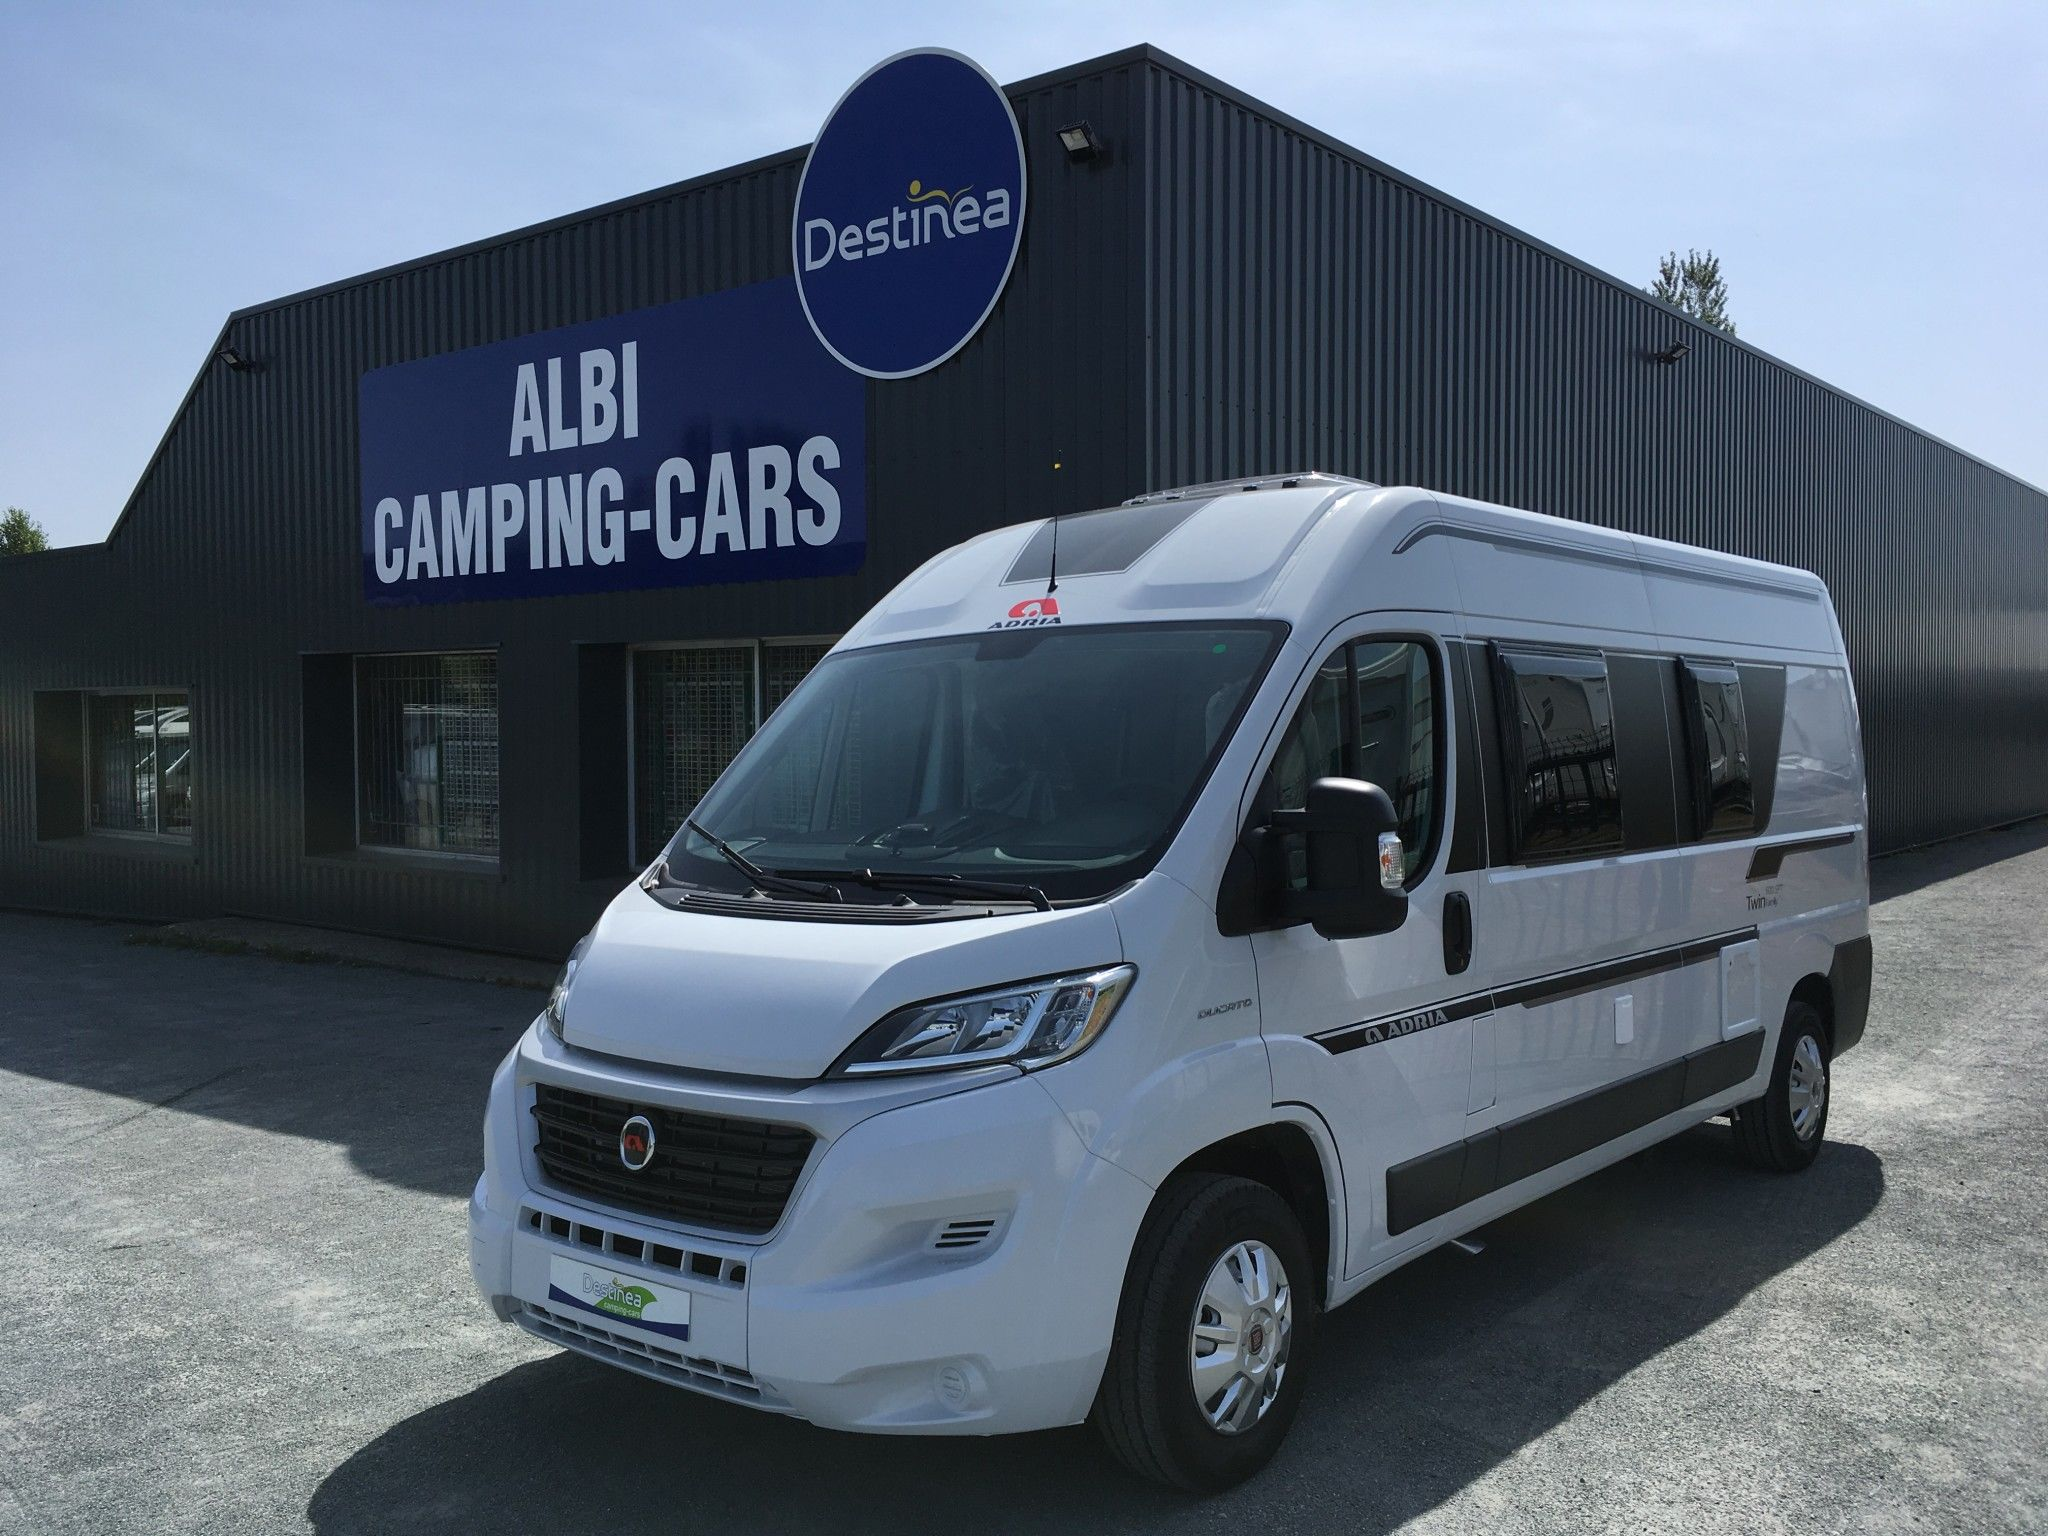 Camping-car ADRIA TWIN 600 SPT FAMILY